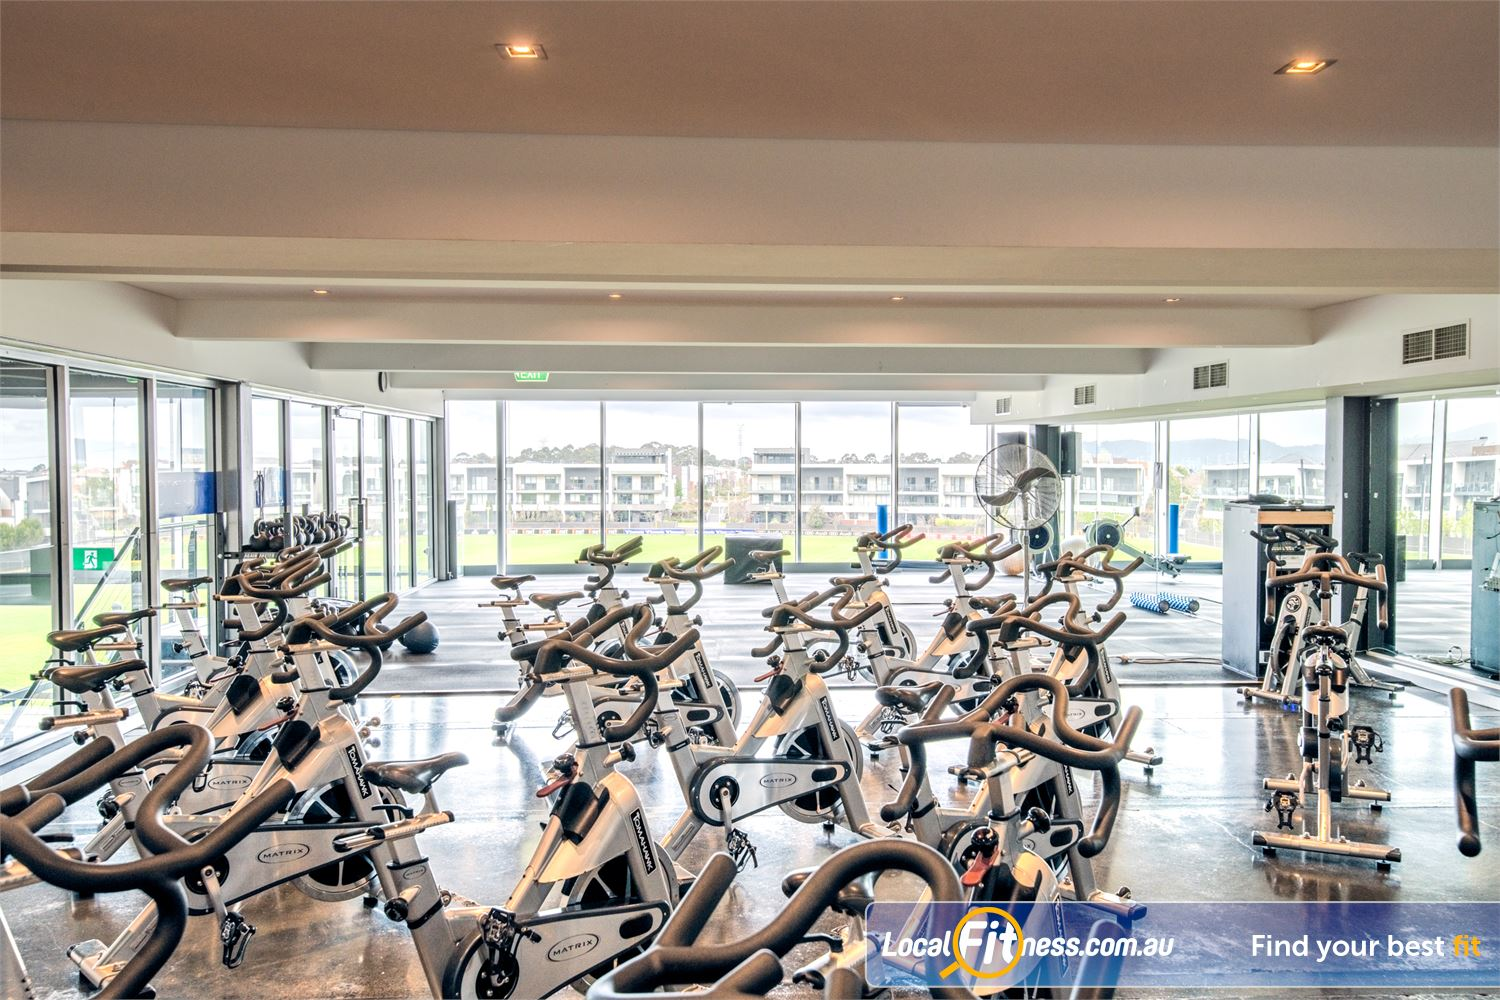 Goodlife Health Clubs Waverley Park Mulgrave Our cycle studio provides unique and stunning views overlooking the Waverley Park oval.